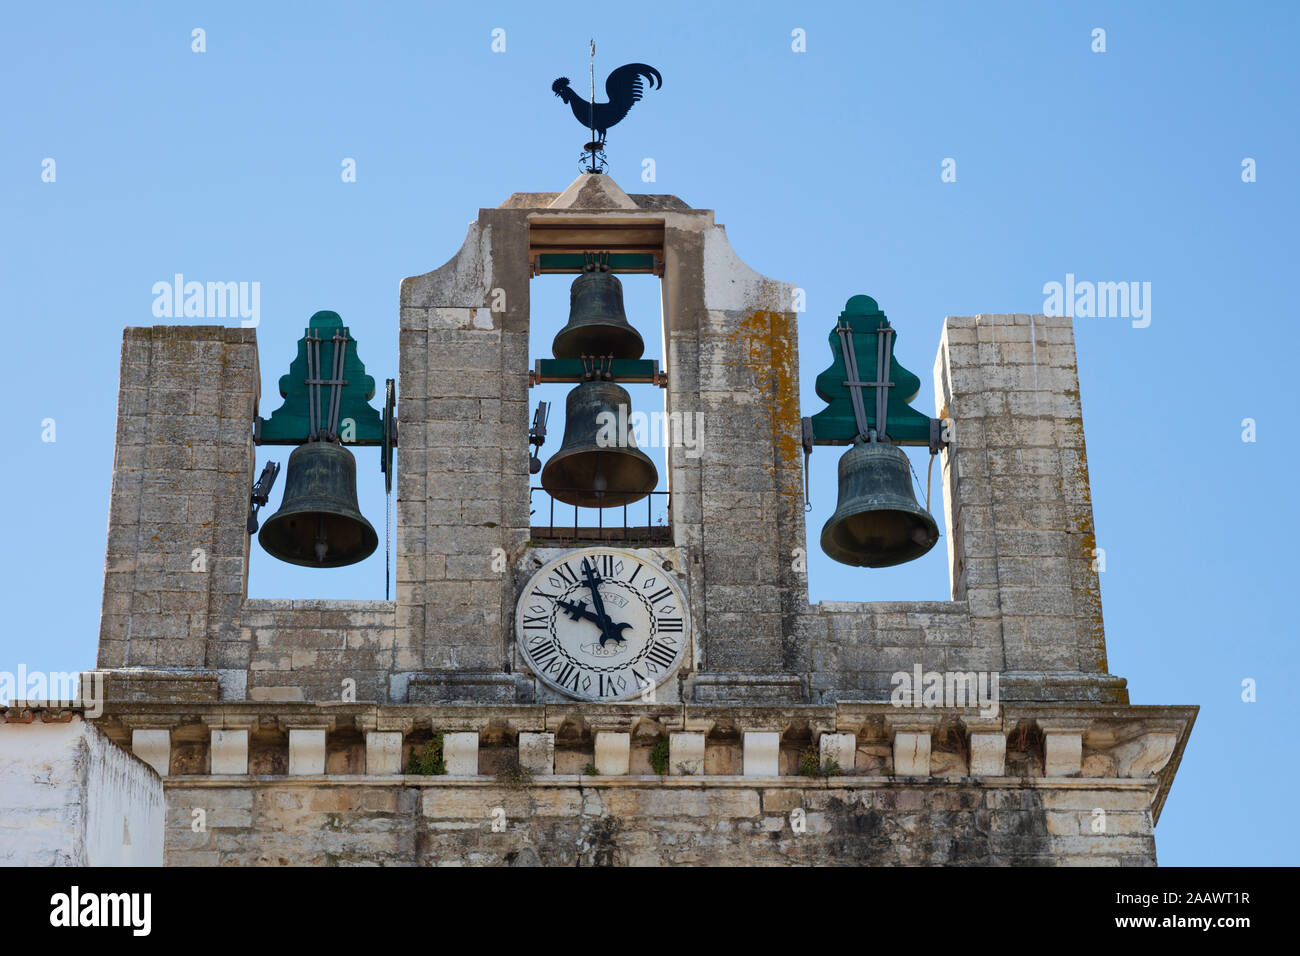 Low angle view of bell tower against clear sky at Faro, Portugal Stock Photo